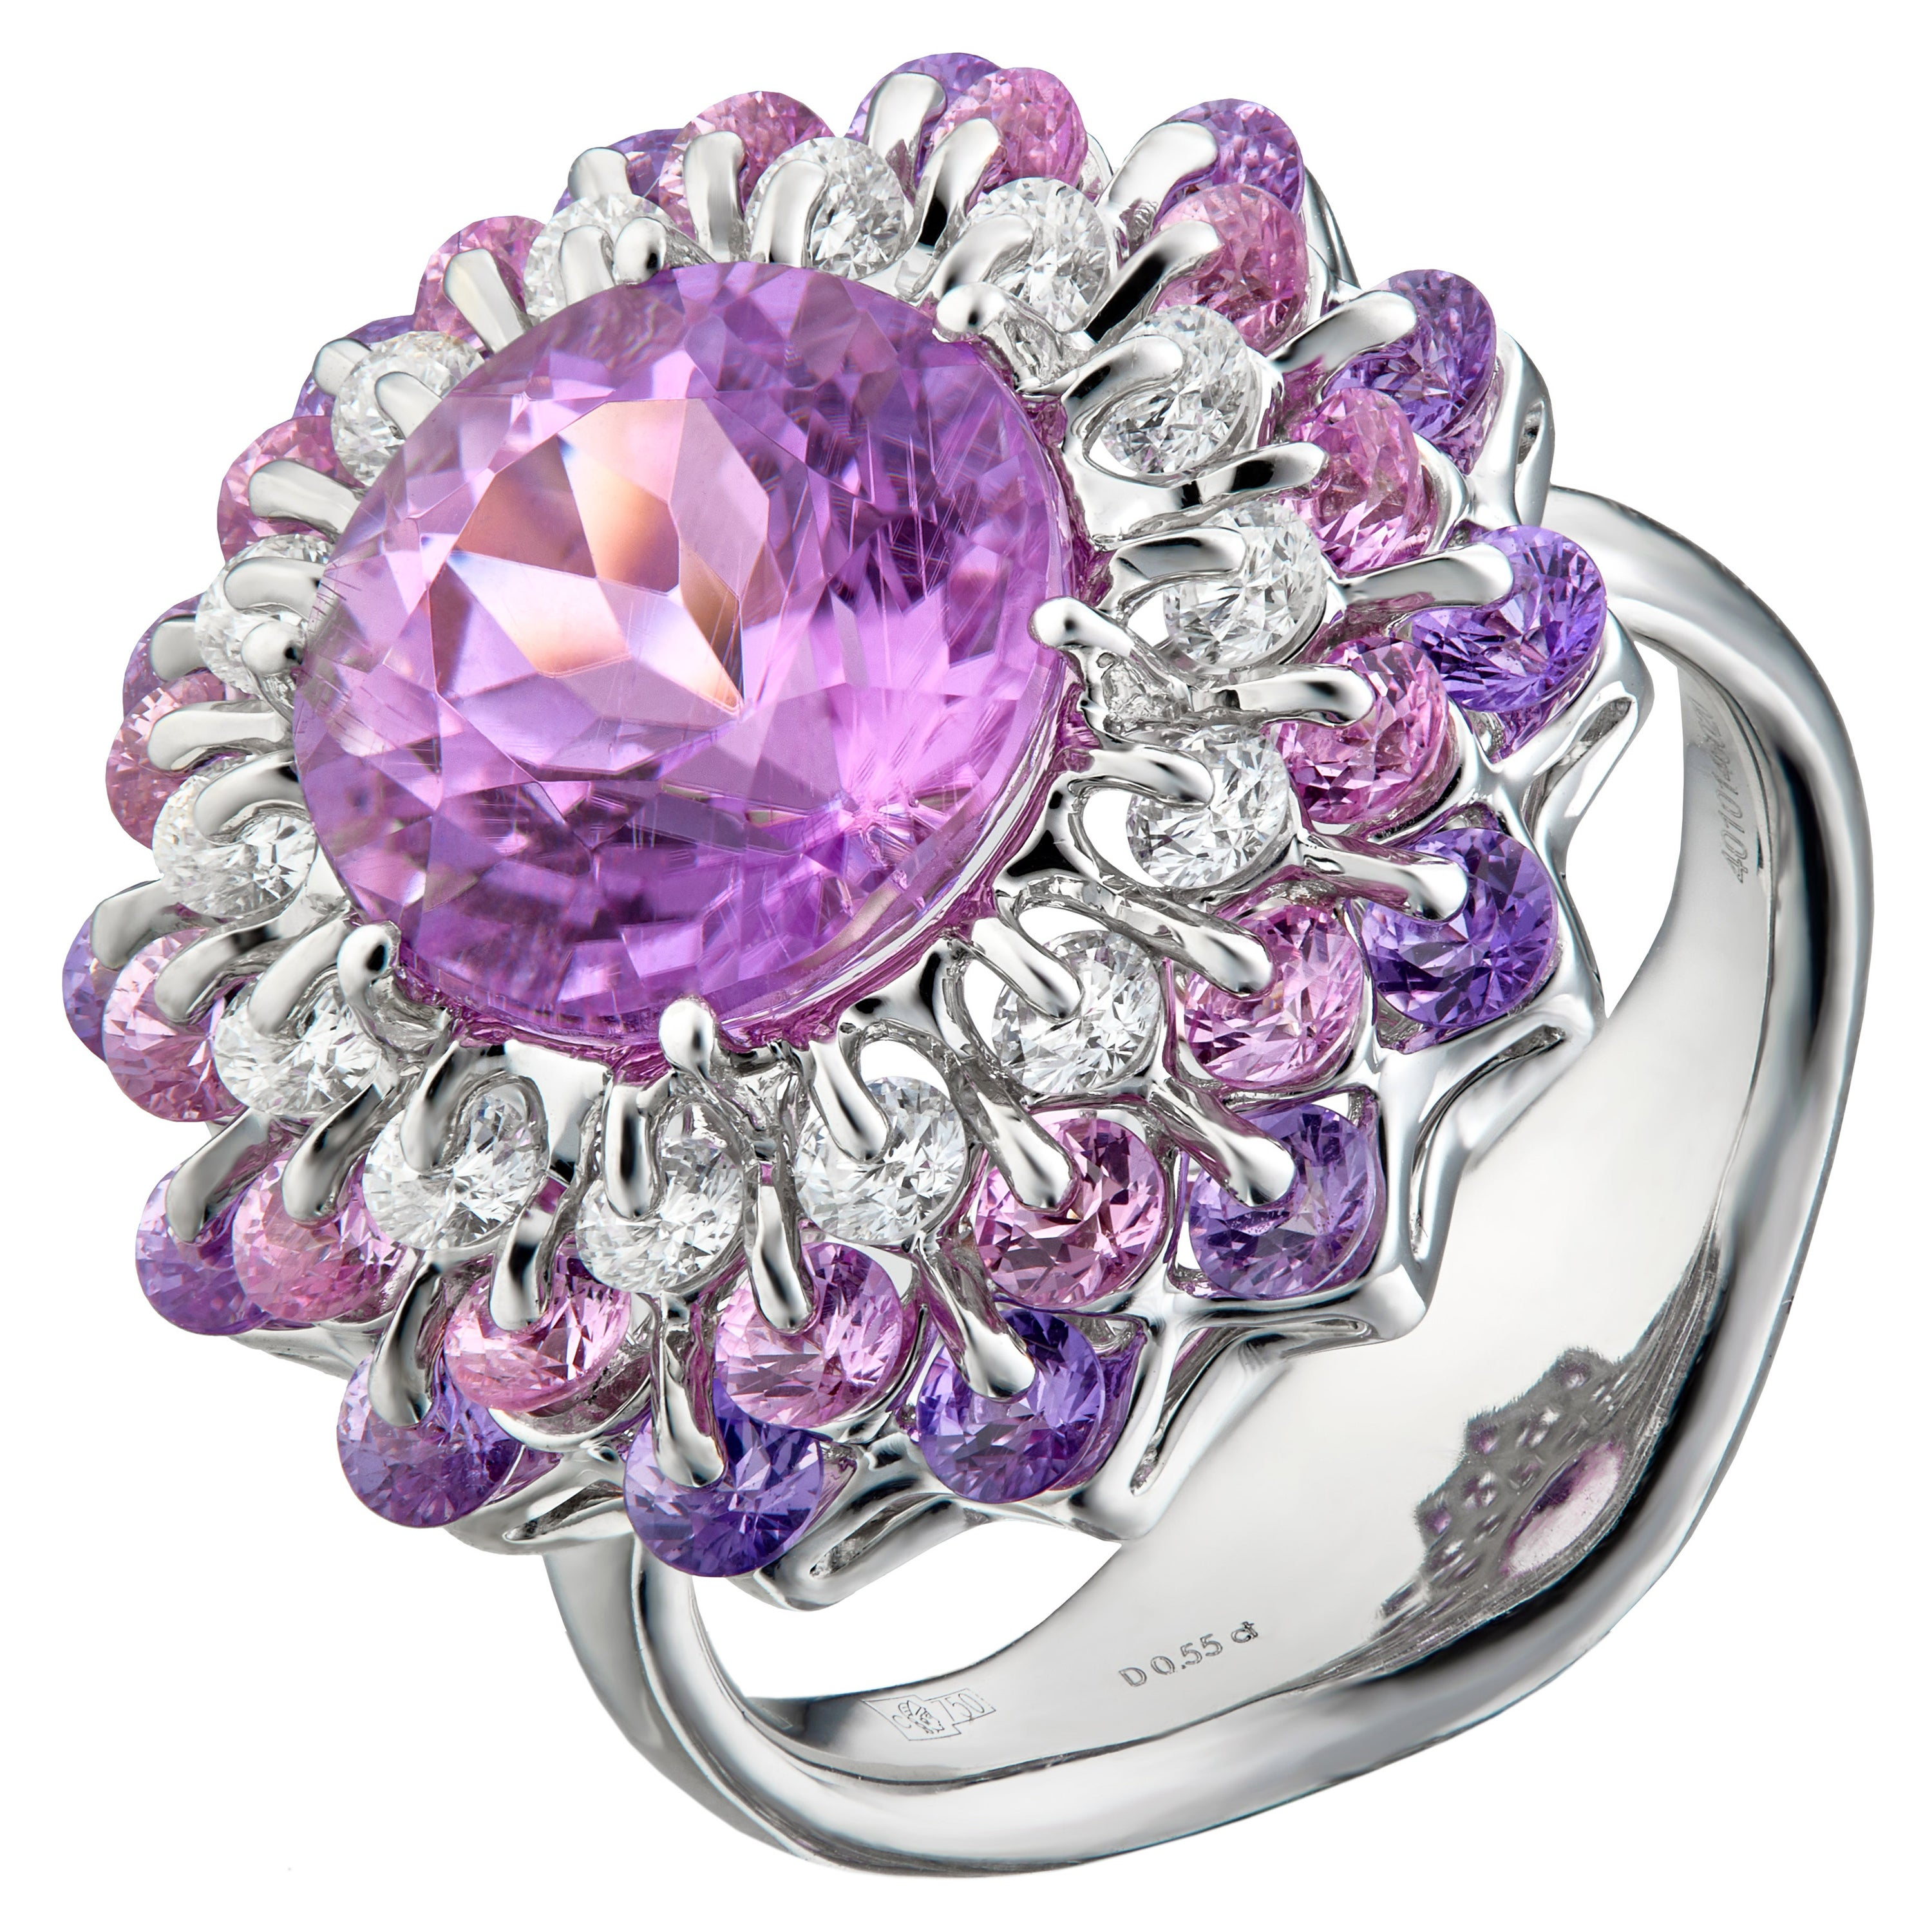 MOISEIKIN 18Karat White Gold 4ct Kunzite Diamond Sapphire Cocktail Ring